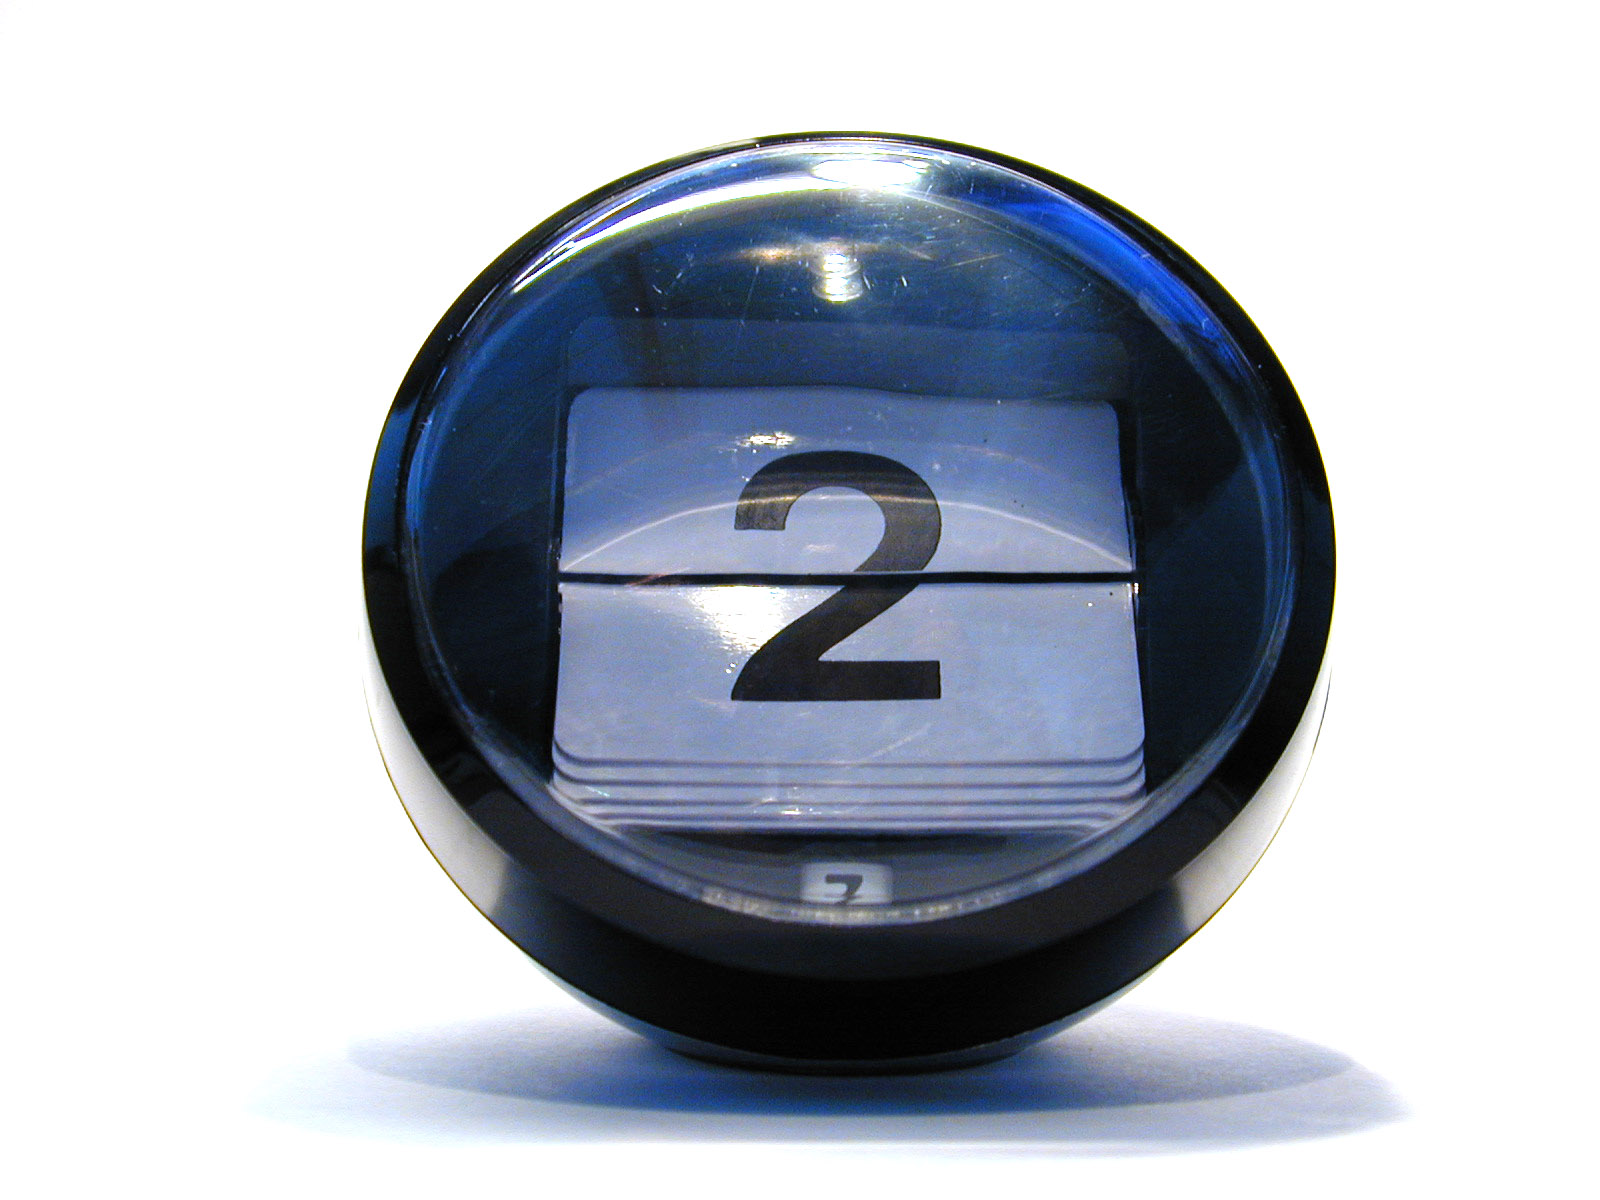 clock alarm calender month day indicator blue sphere 2 two